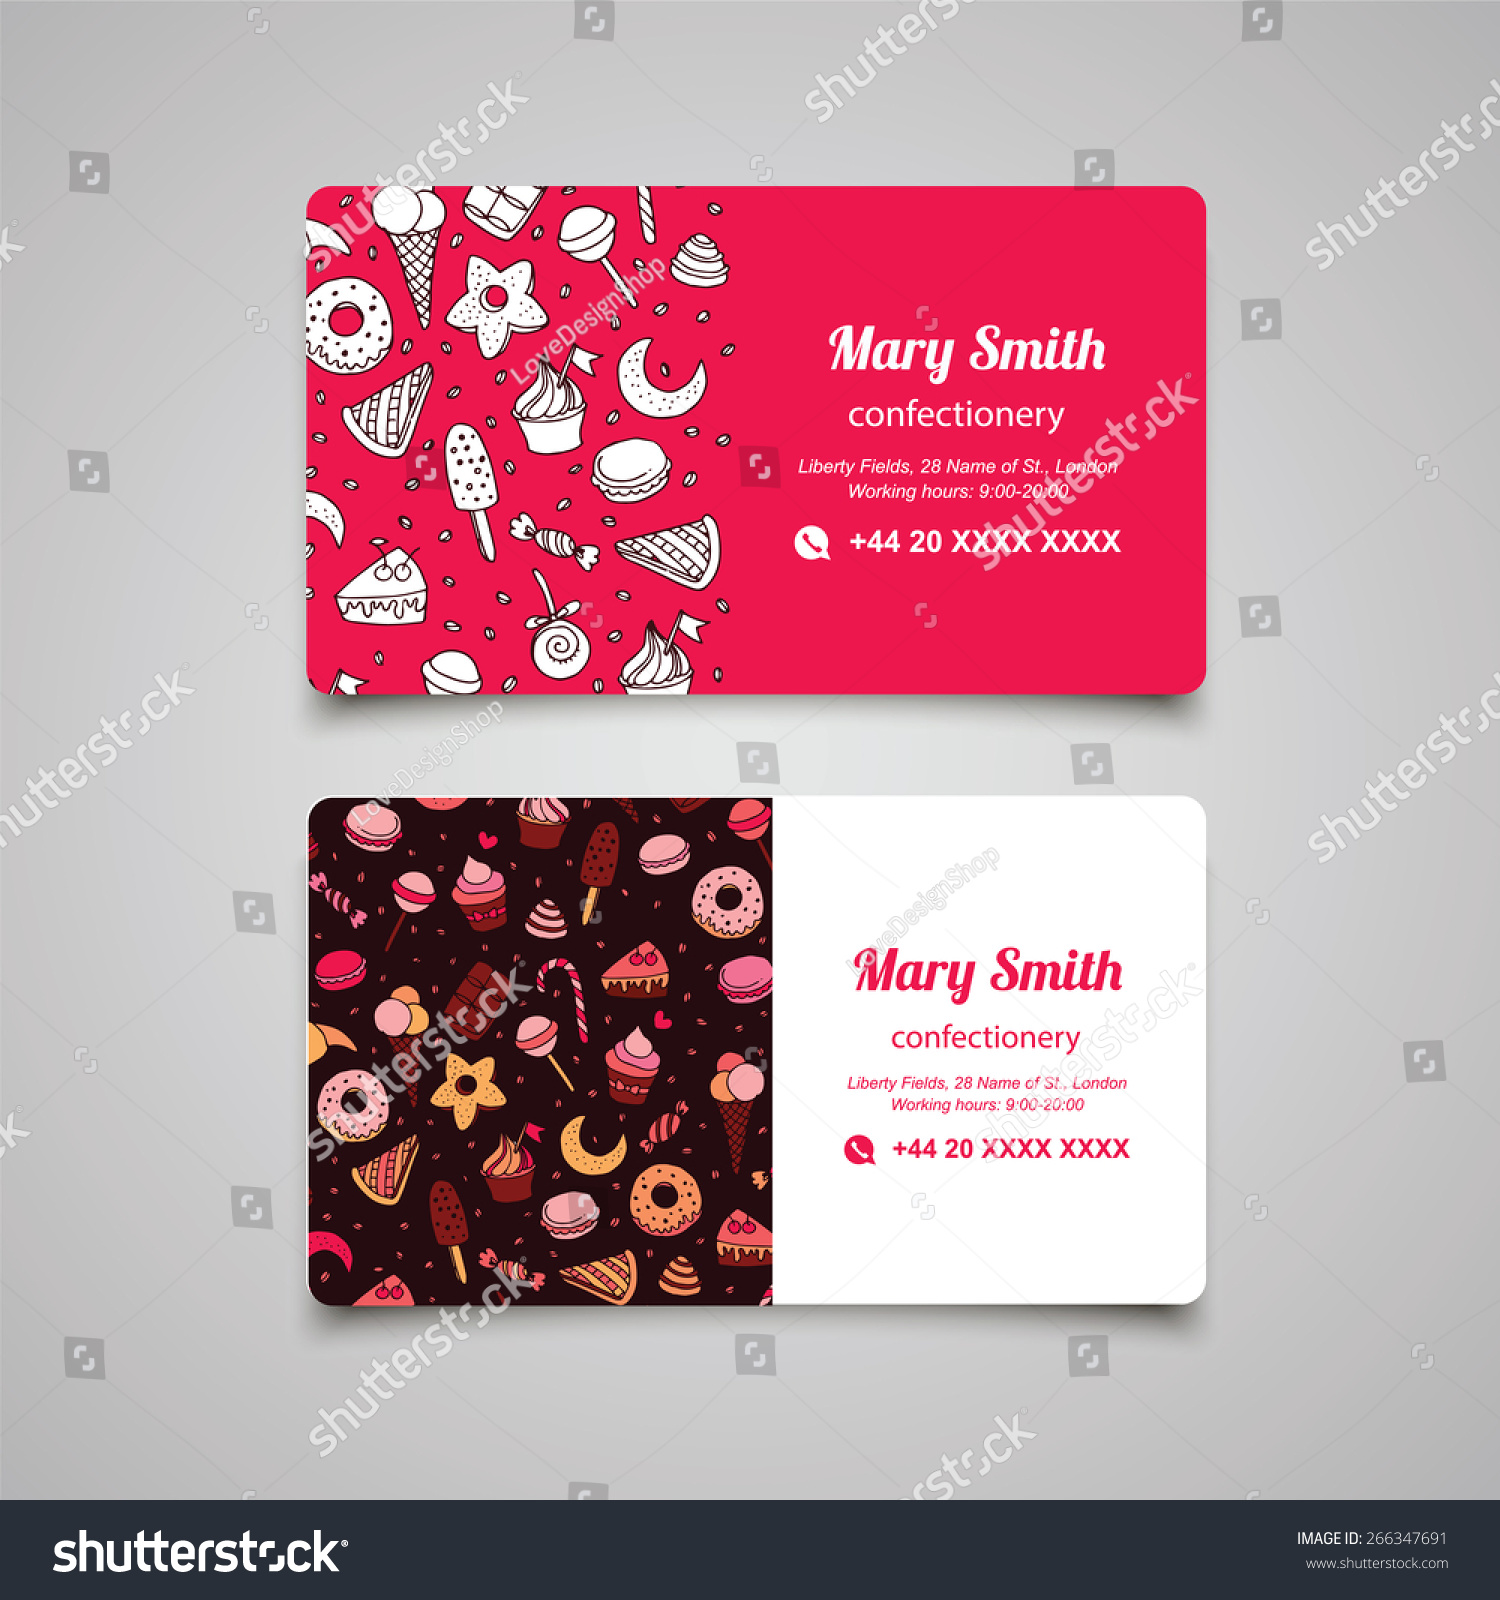 Confectionery Business Card Sweets Pattern Stock Vector 266347691 ...